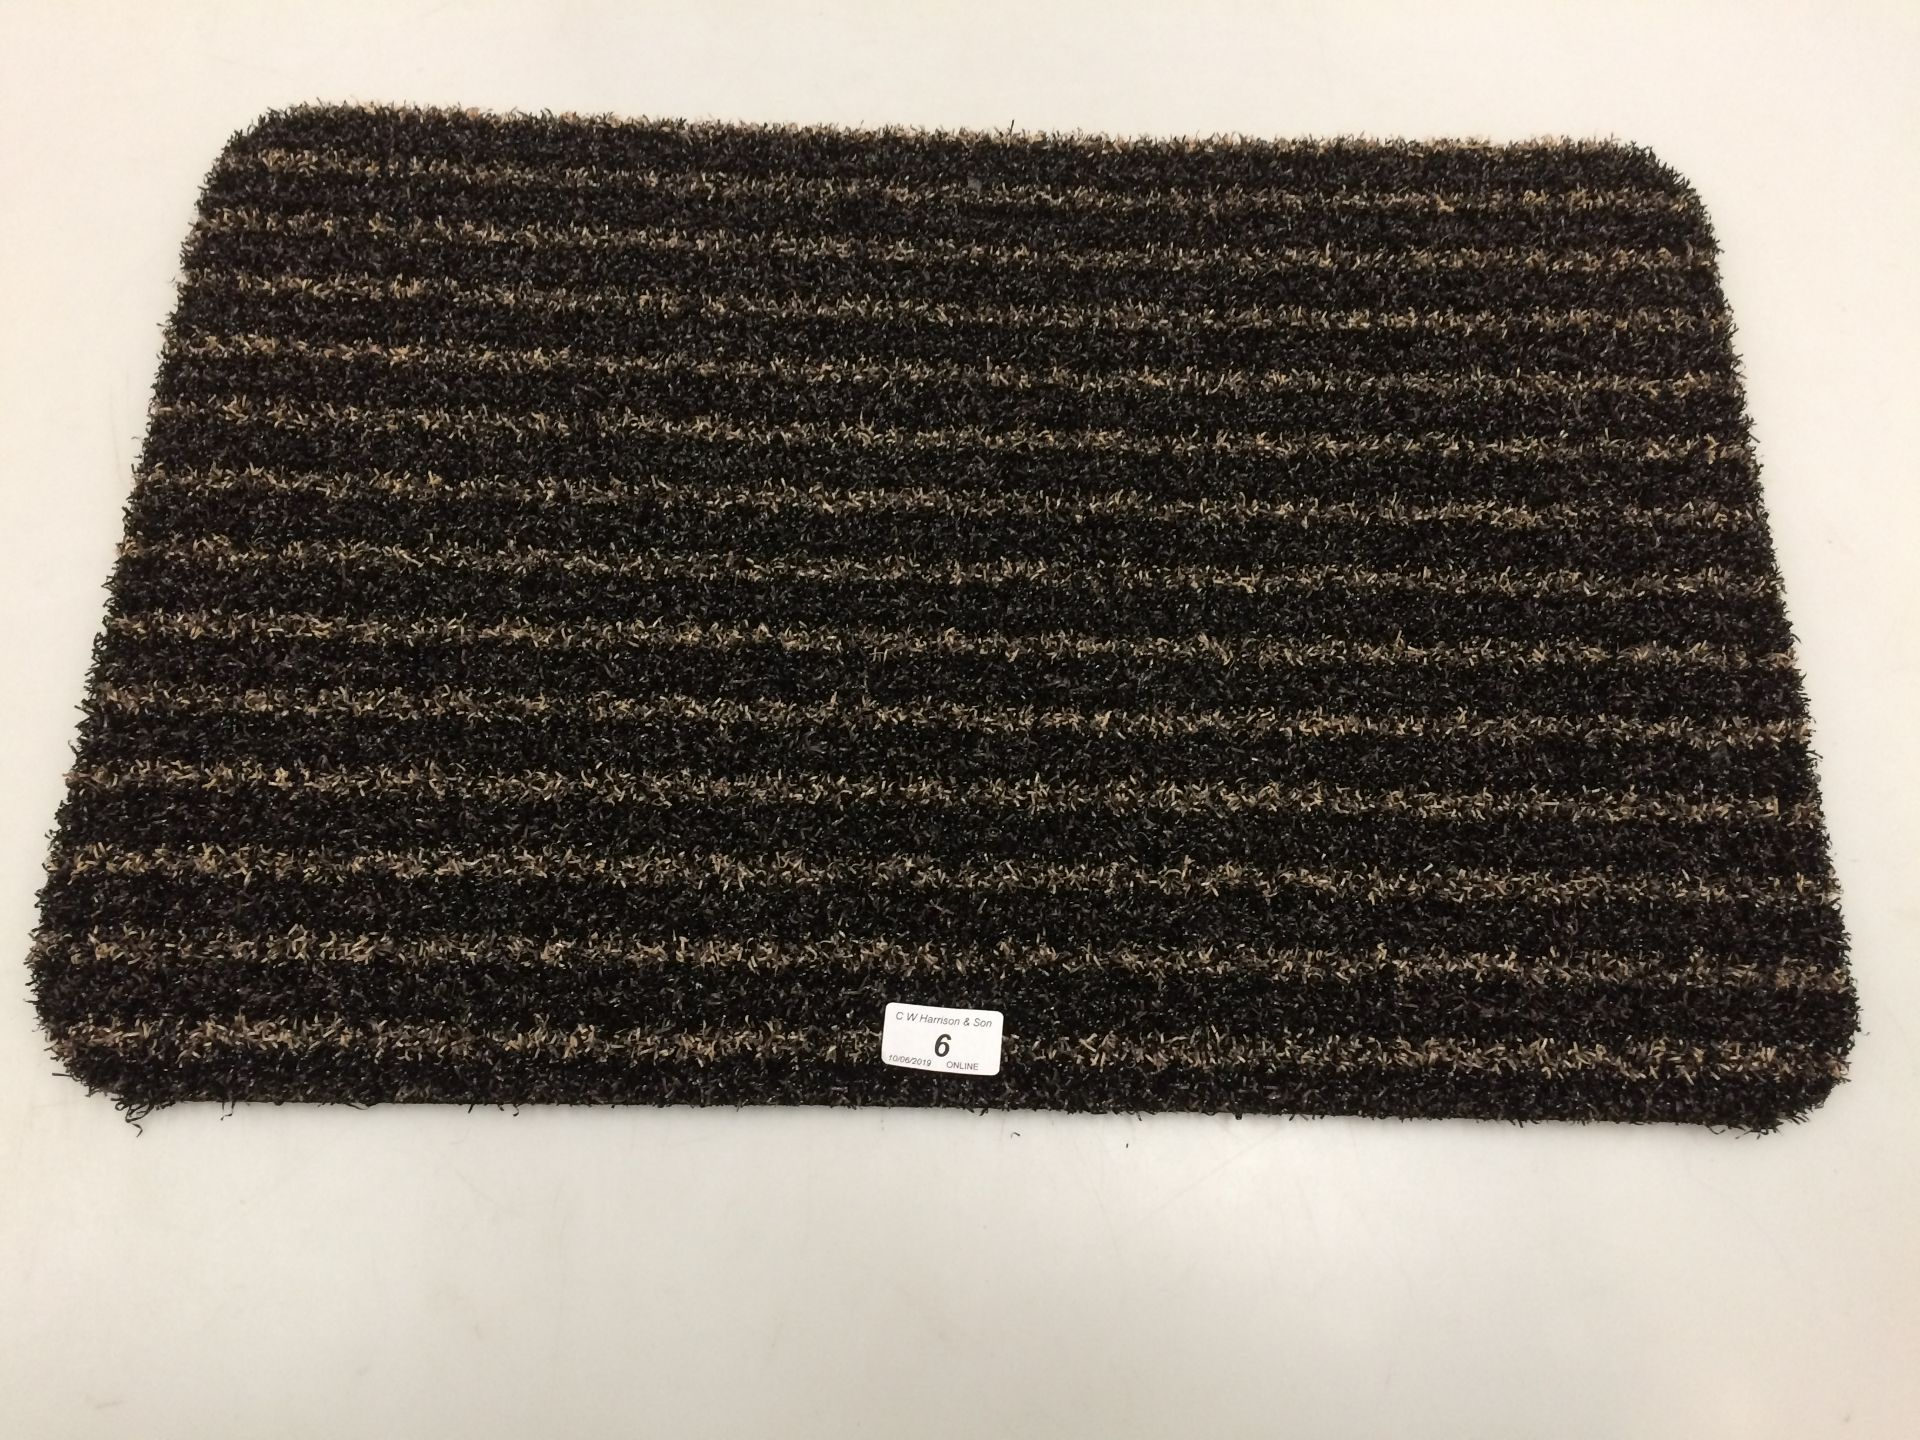 Lot 6 - 10 x black and gold striped door mats with rubber anti-slip inlay each 40 x 60cm